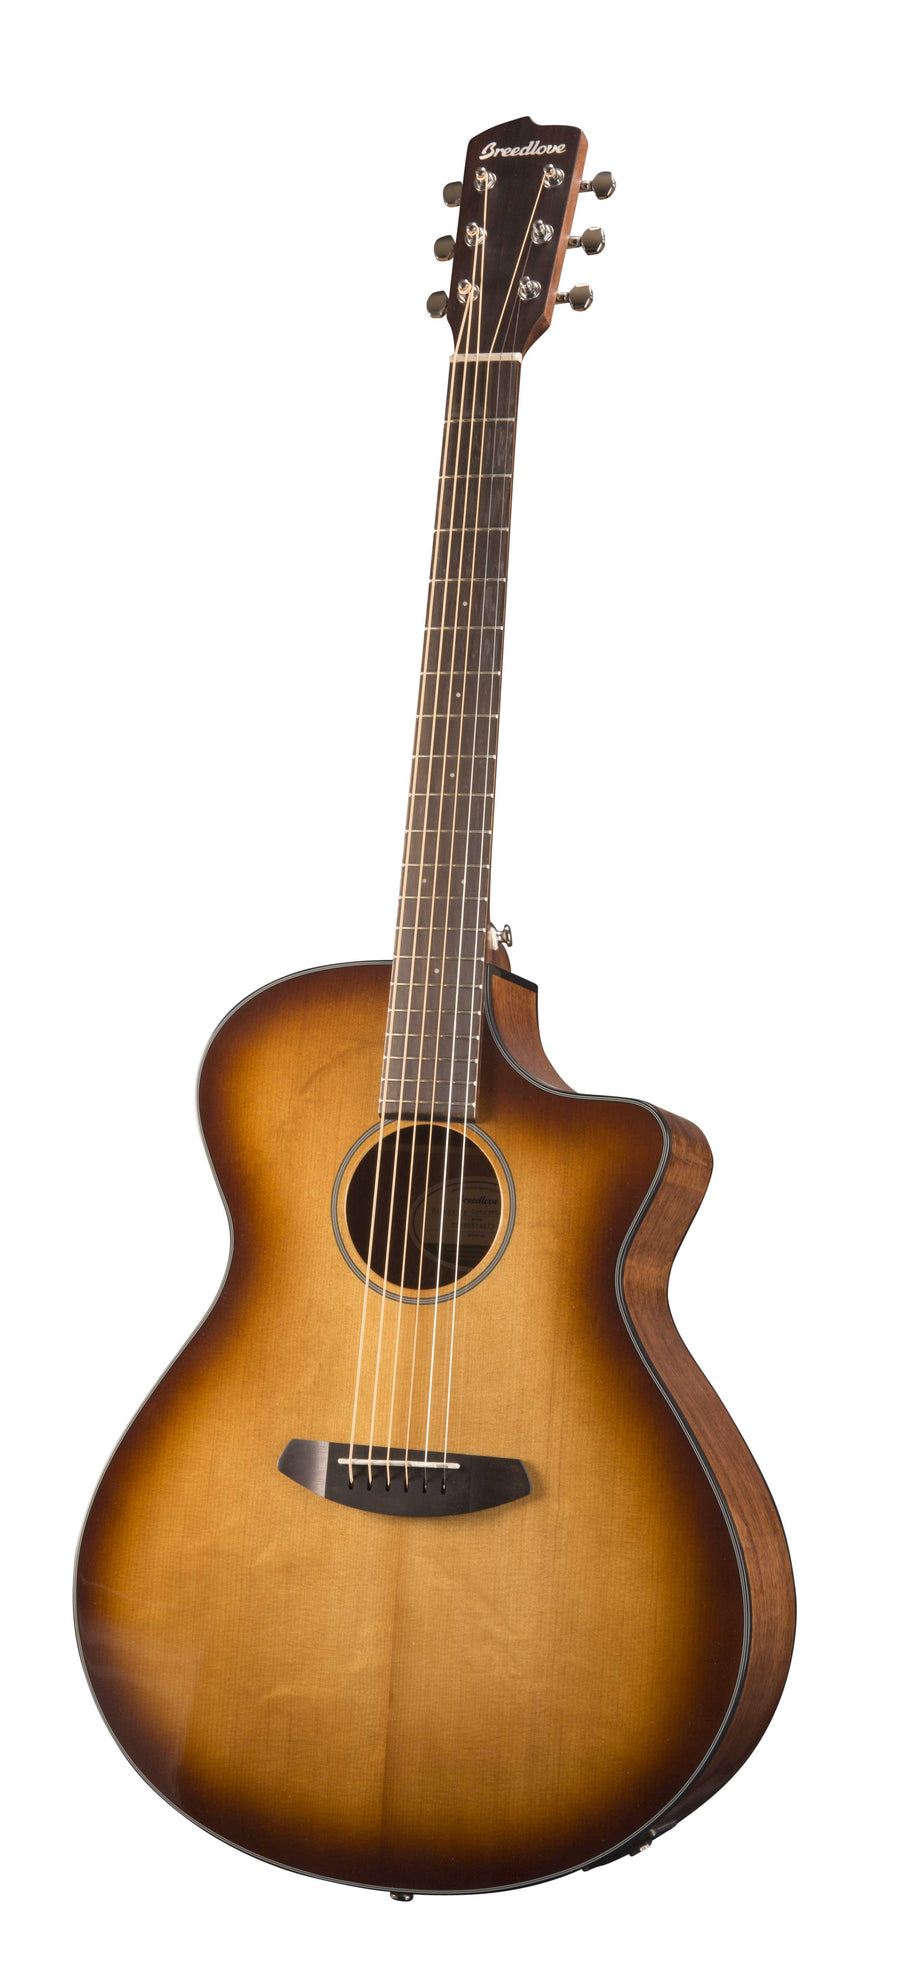 Breedlove Discovery Concerto CE Sunburst Acoustic Electric Guitar